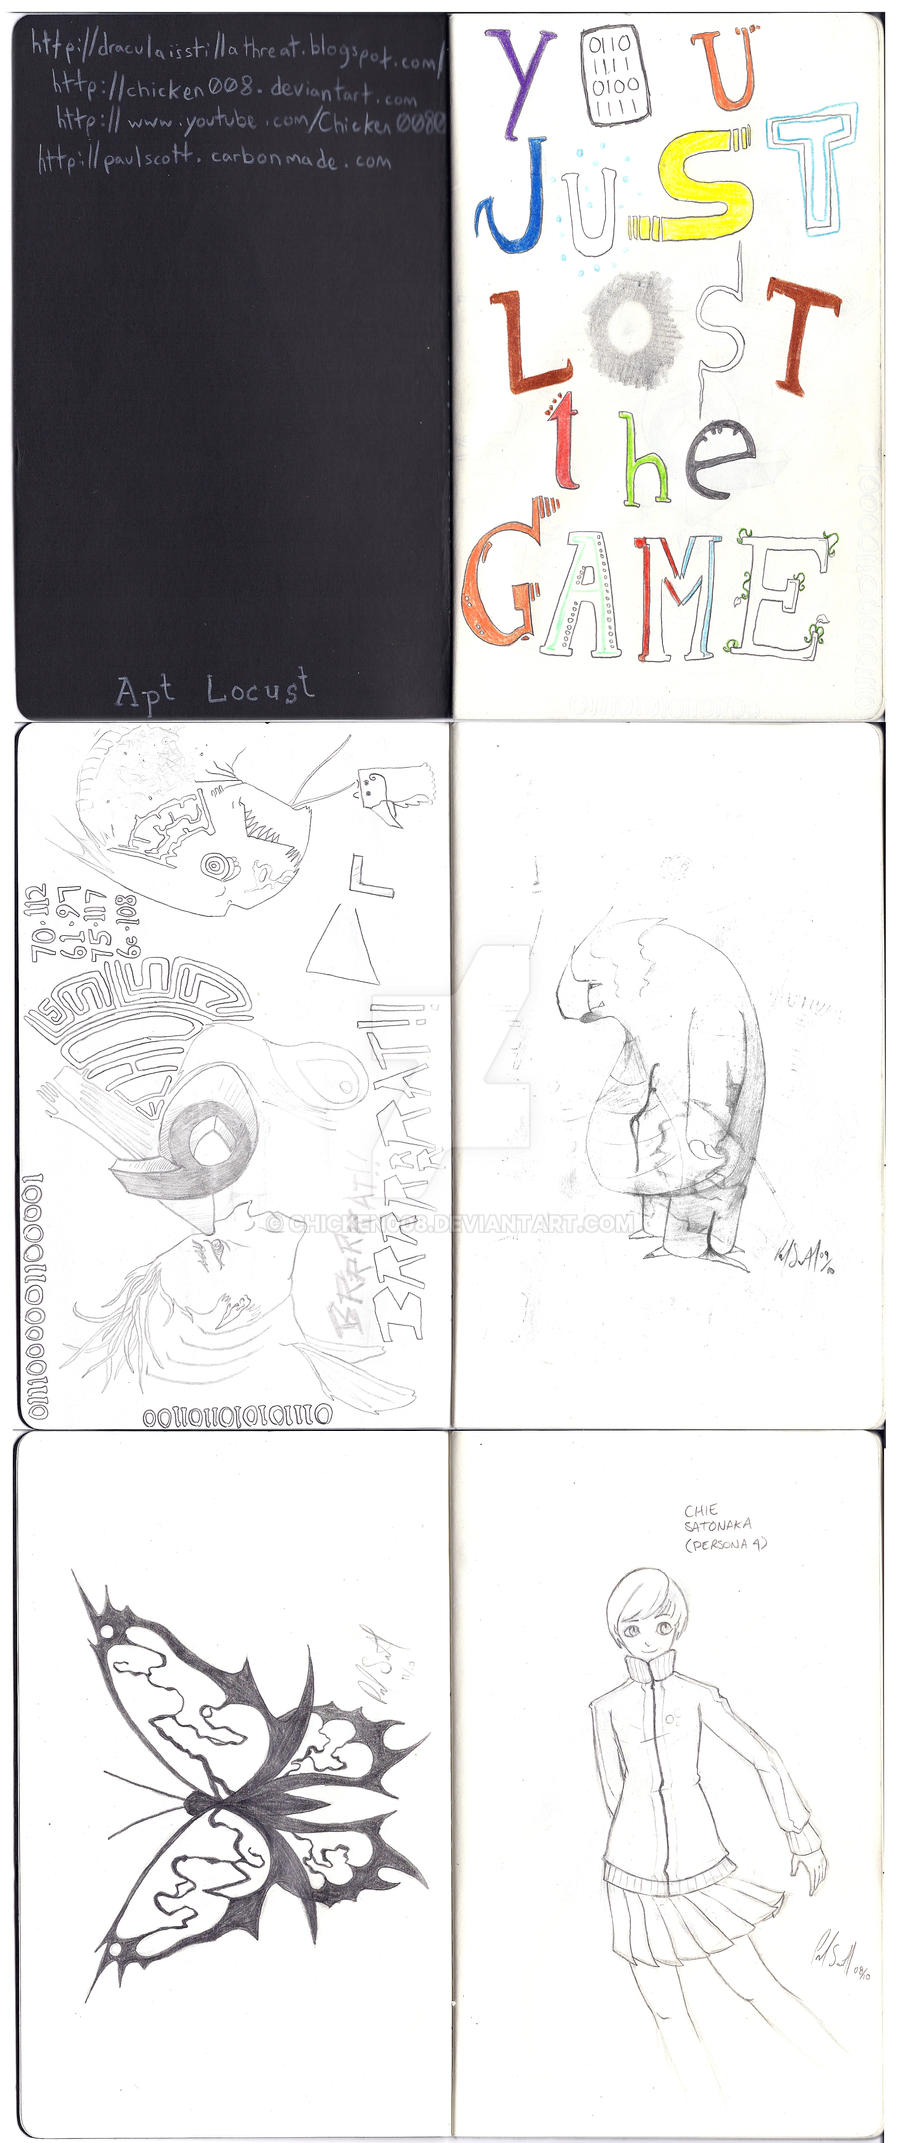 Sketchbook Project Pages 1-6